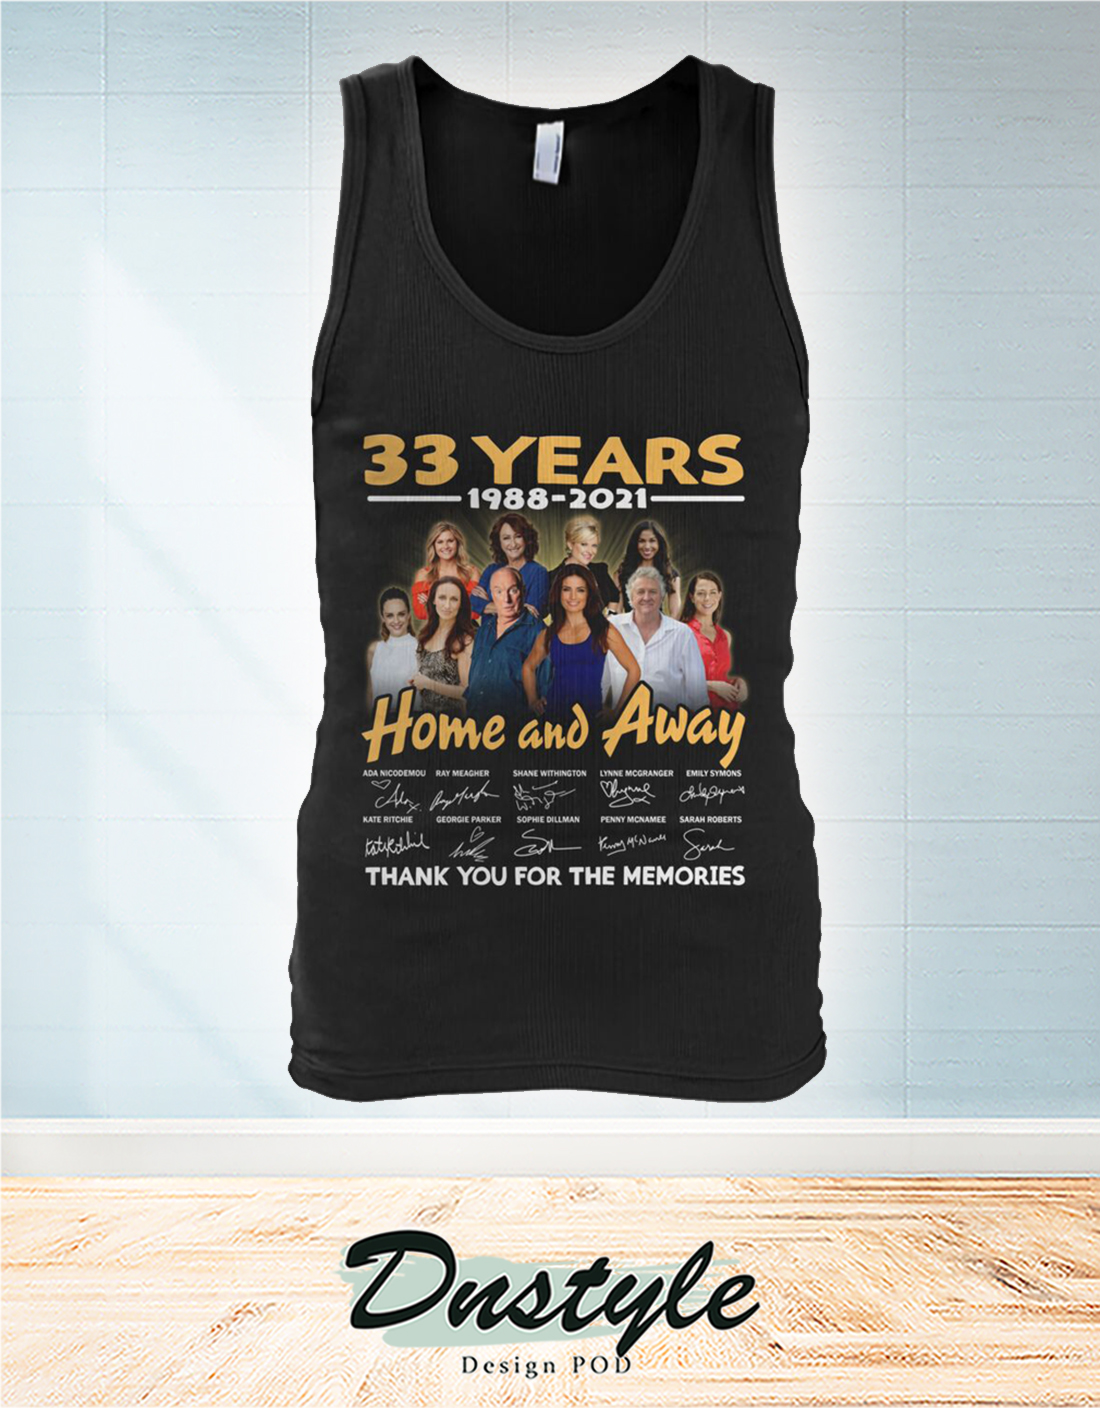 Home and away 33 years thank you for the memories tank top